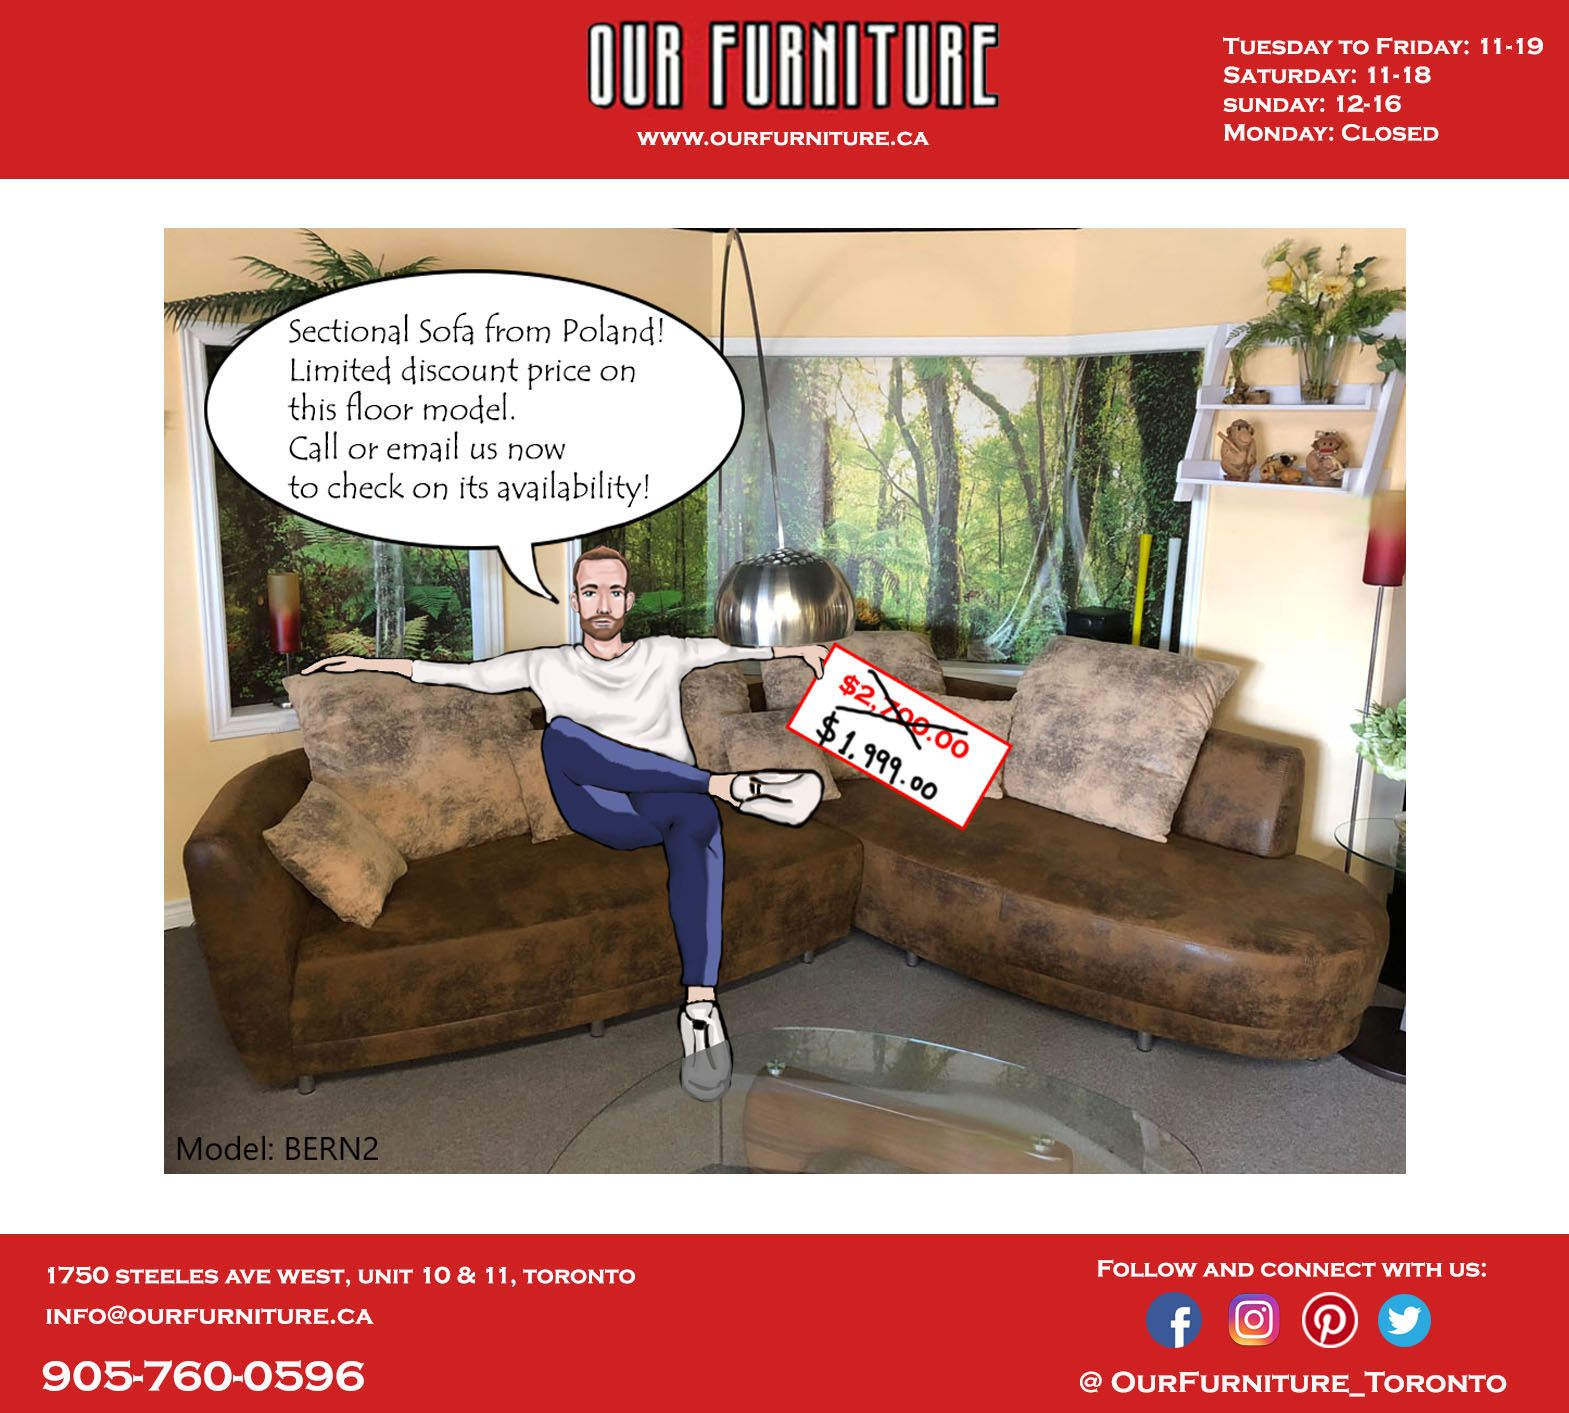 Check Out This Sectional Sofa For Only